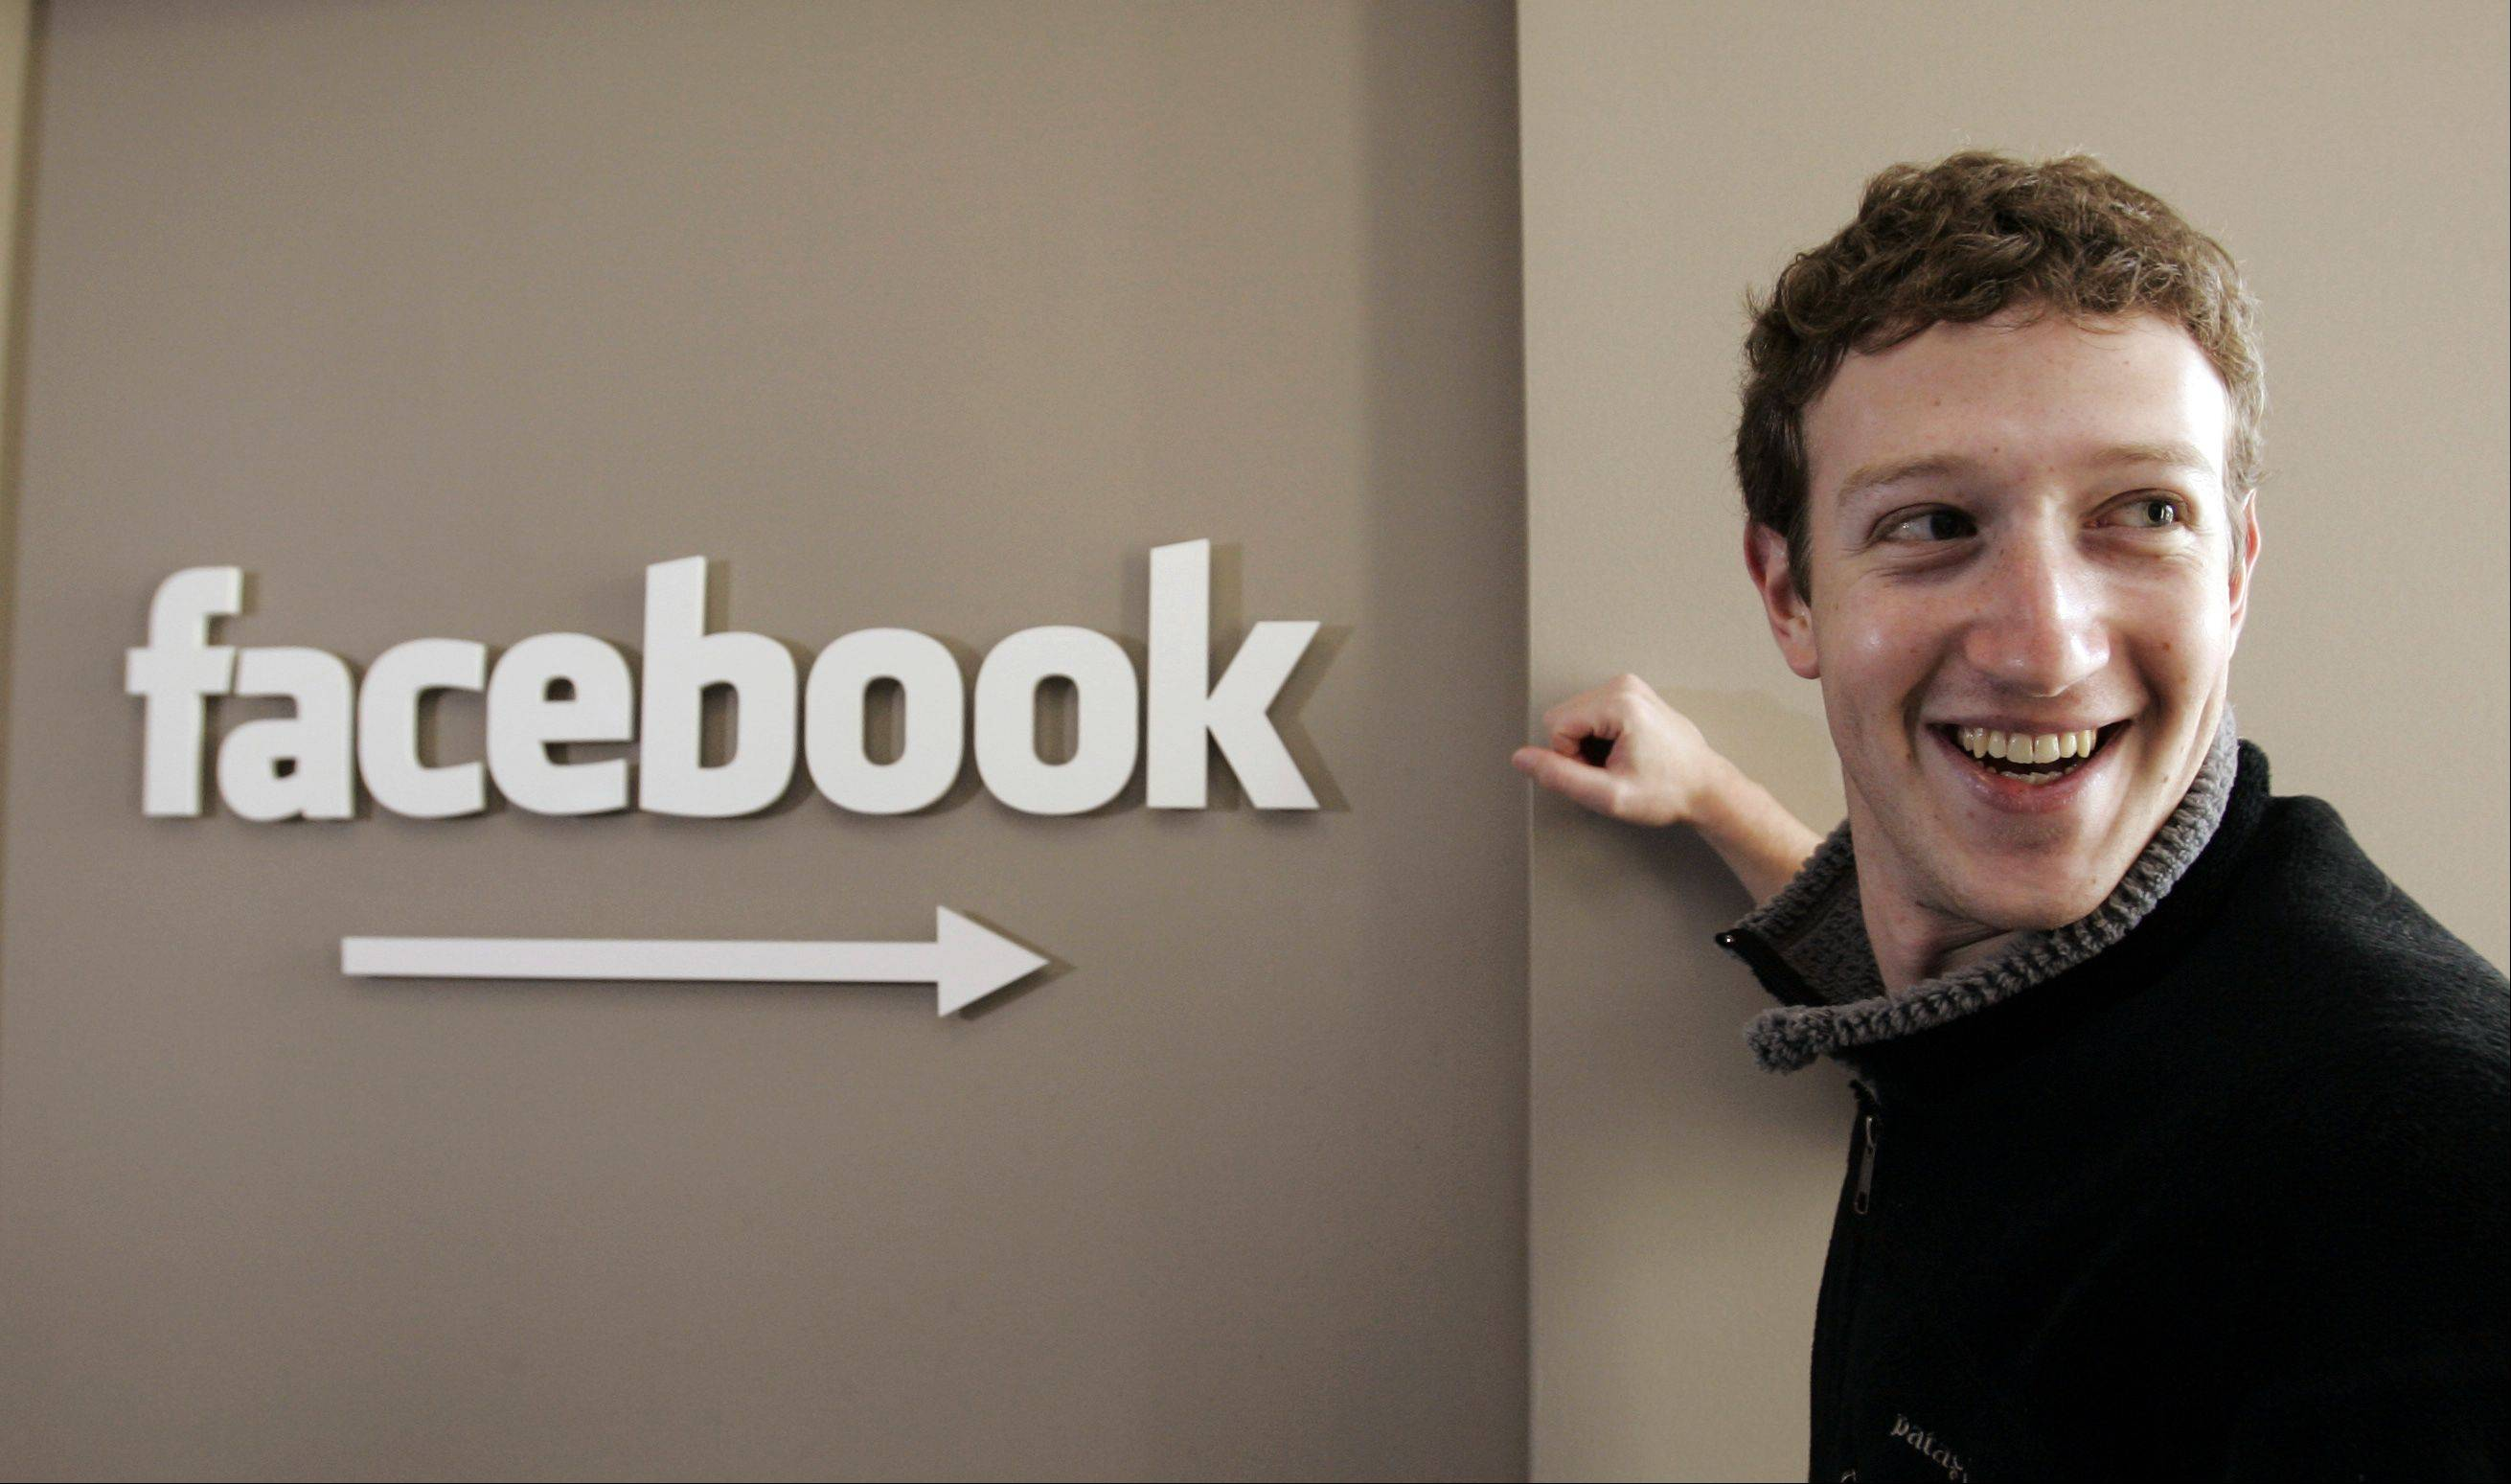 Since Facebook founder Mark Zuckerberg posed for this photo at Facebook headquarters in Palo Alto, Calif., in 2007, his creation knows a lot more personal information about the rest of us.